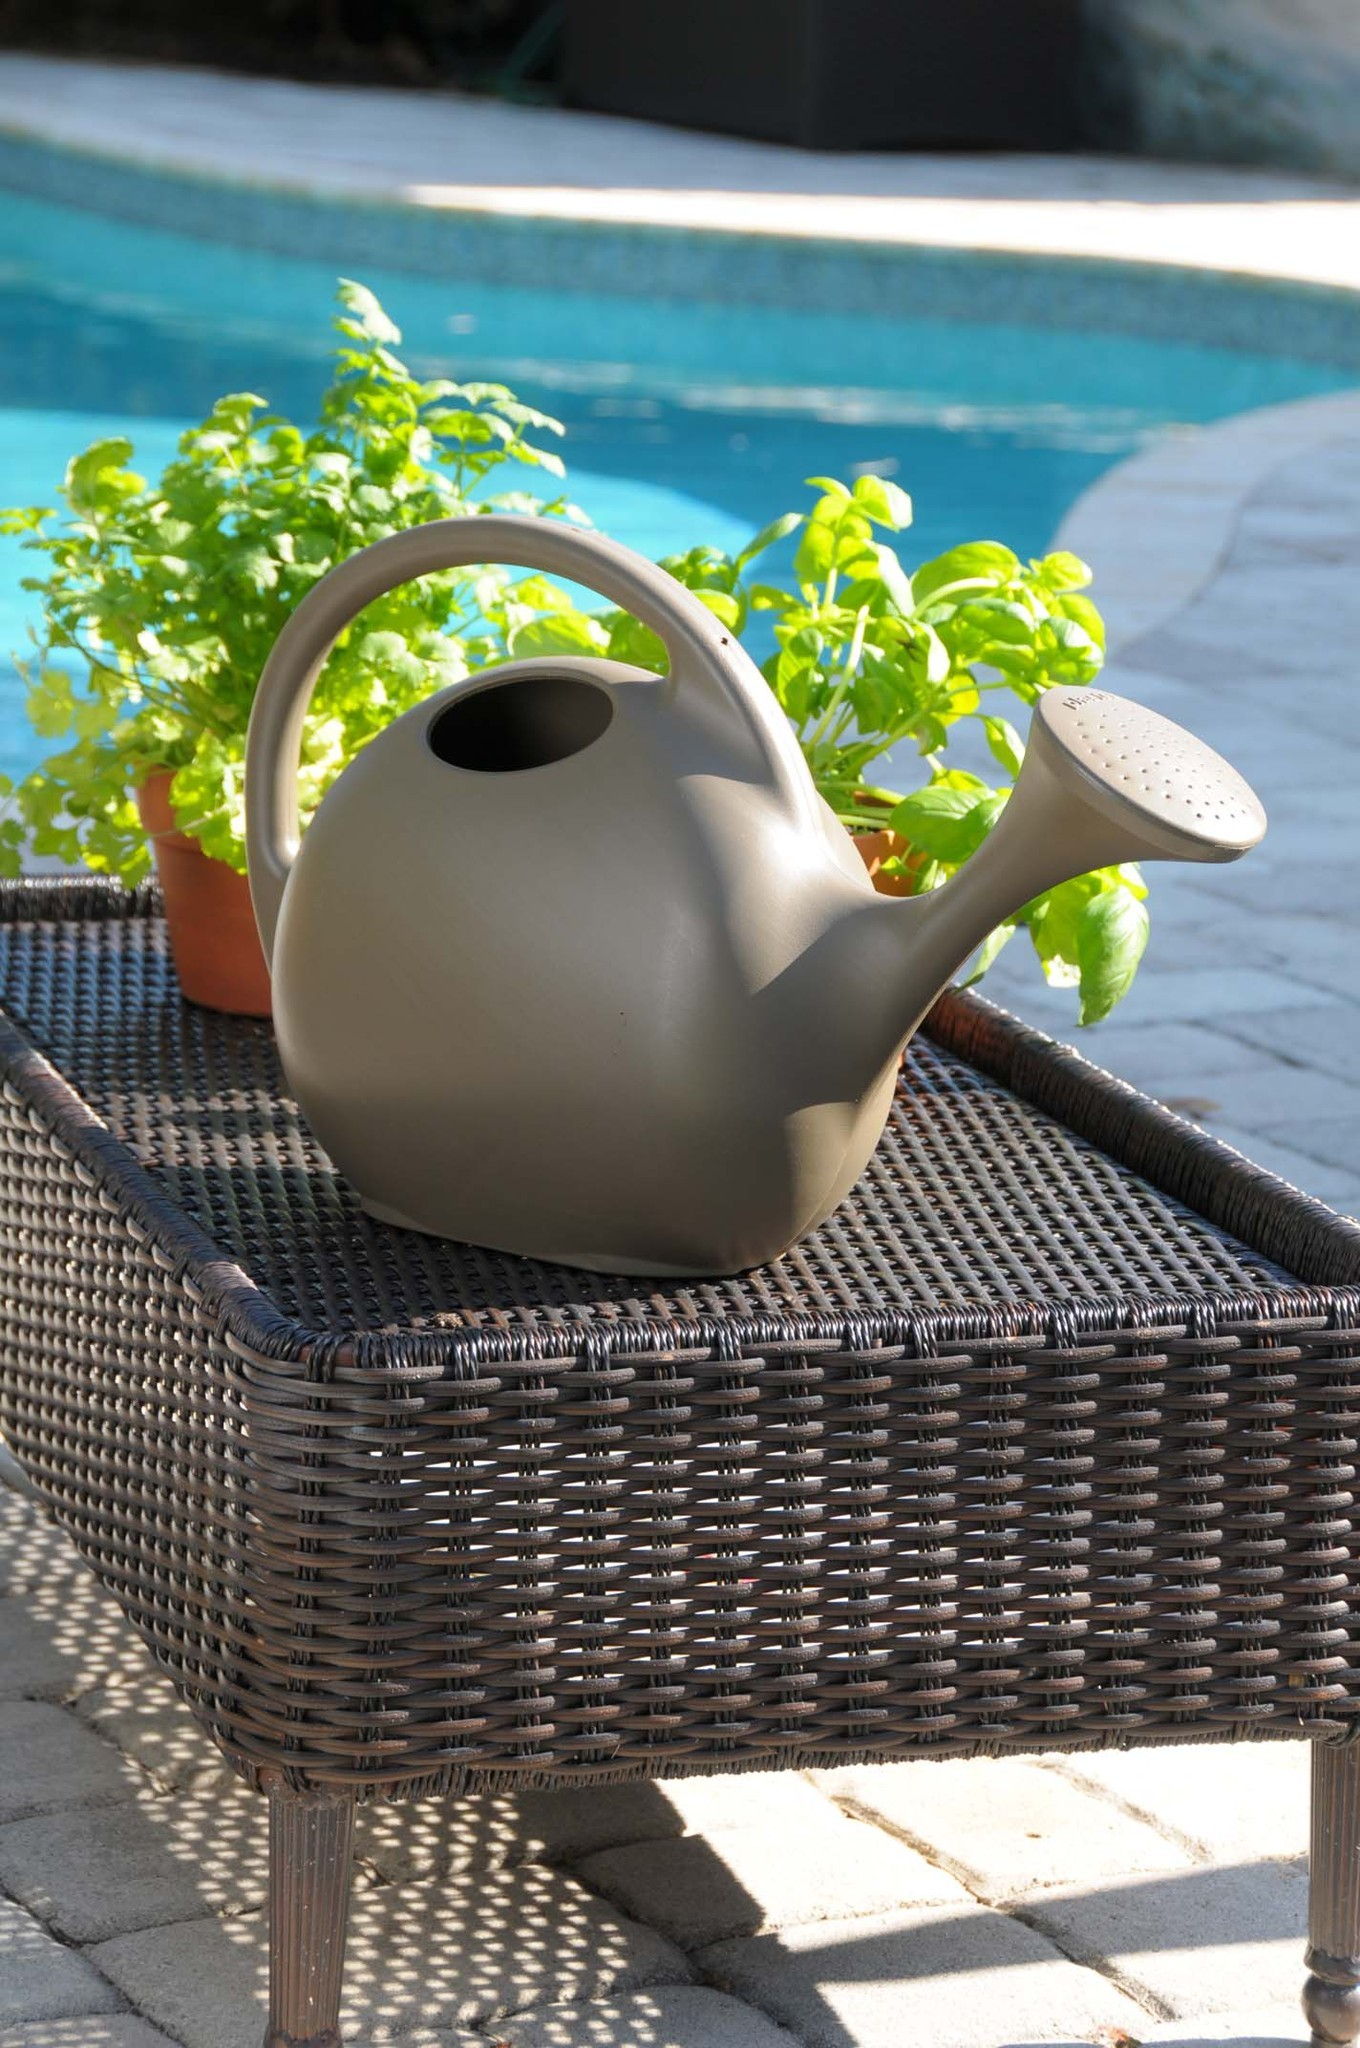 Recycled Usa Made Home Garden Products Old Plastic Becomes New And